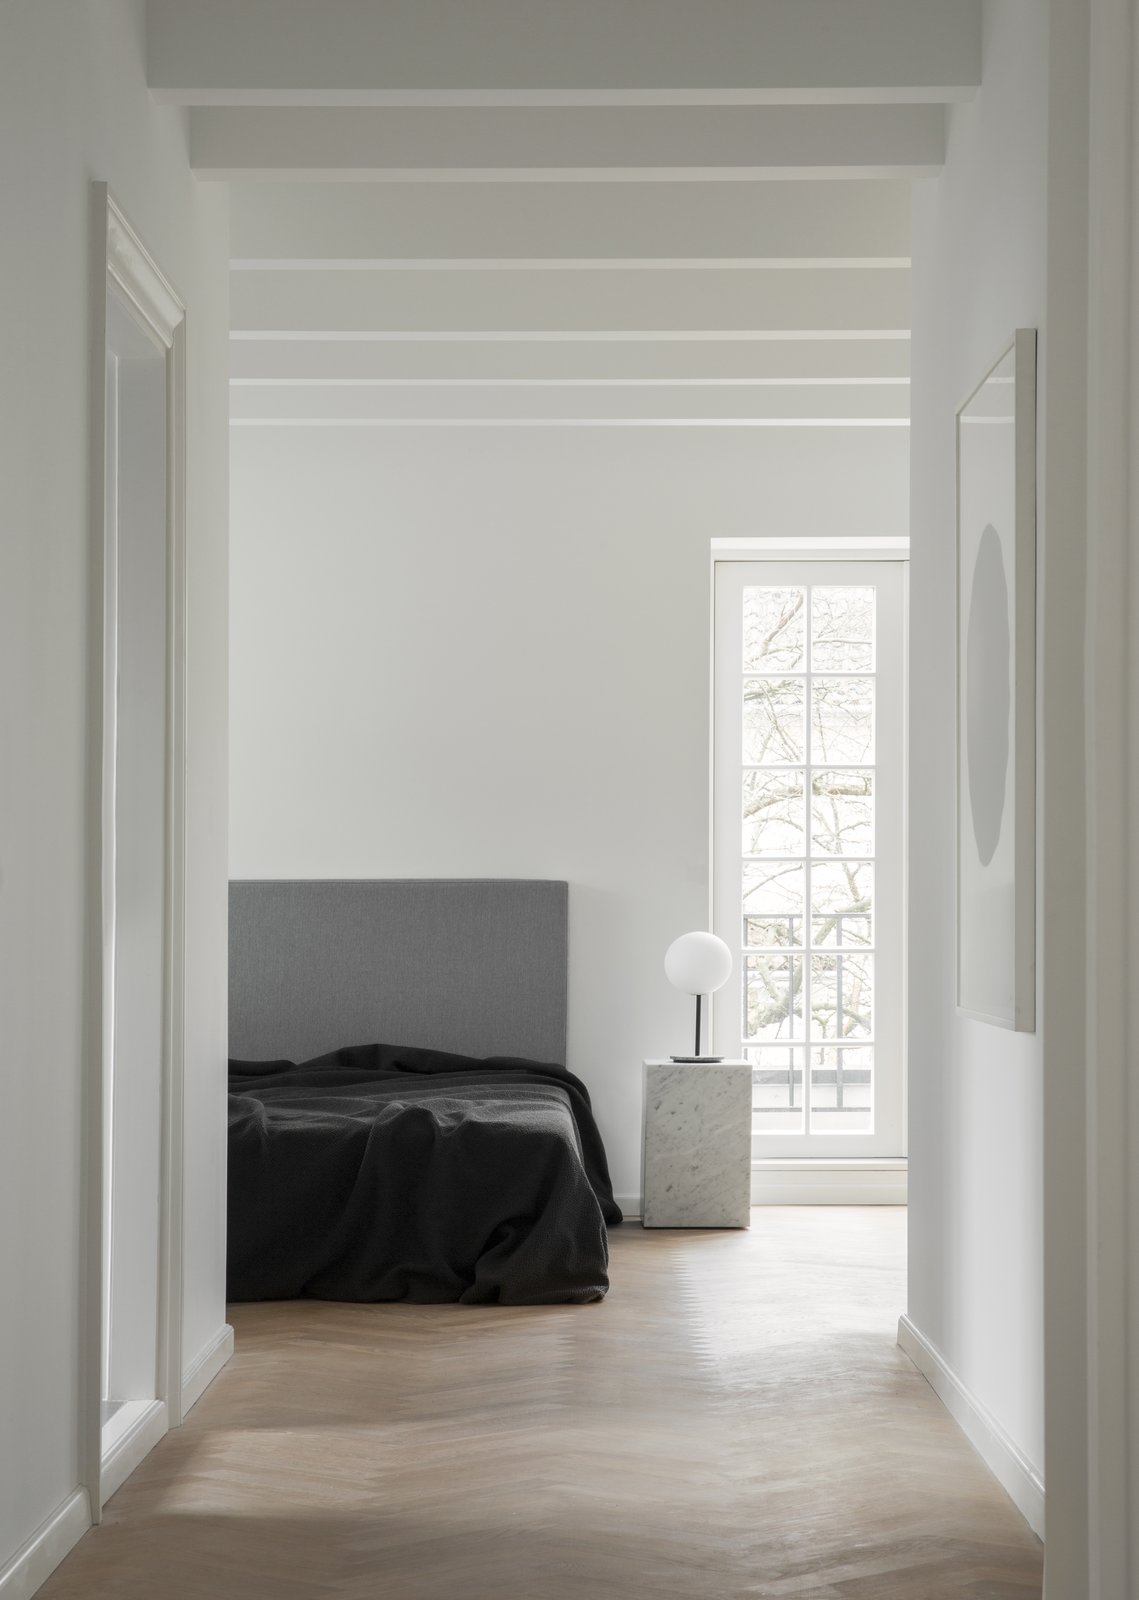 Bedroom, Night Stands, Table Lighting, Light Hardwood Floor, and Bed Every room of the house is light, bright, and comfortable to be in.  Photos from The Historic Villa Once Home to Poul Henningsen Receives a Modern Renovation